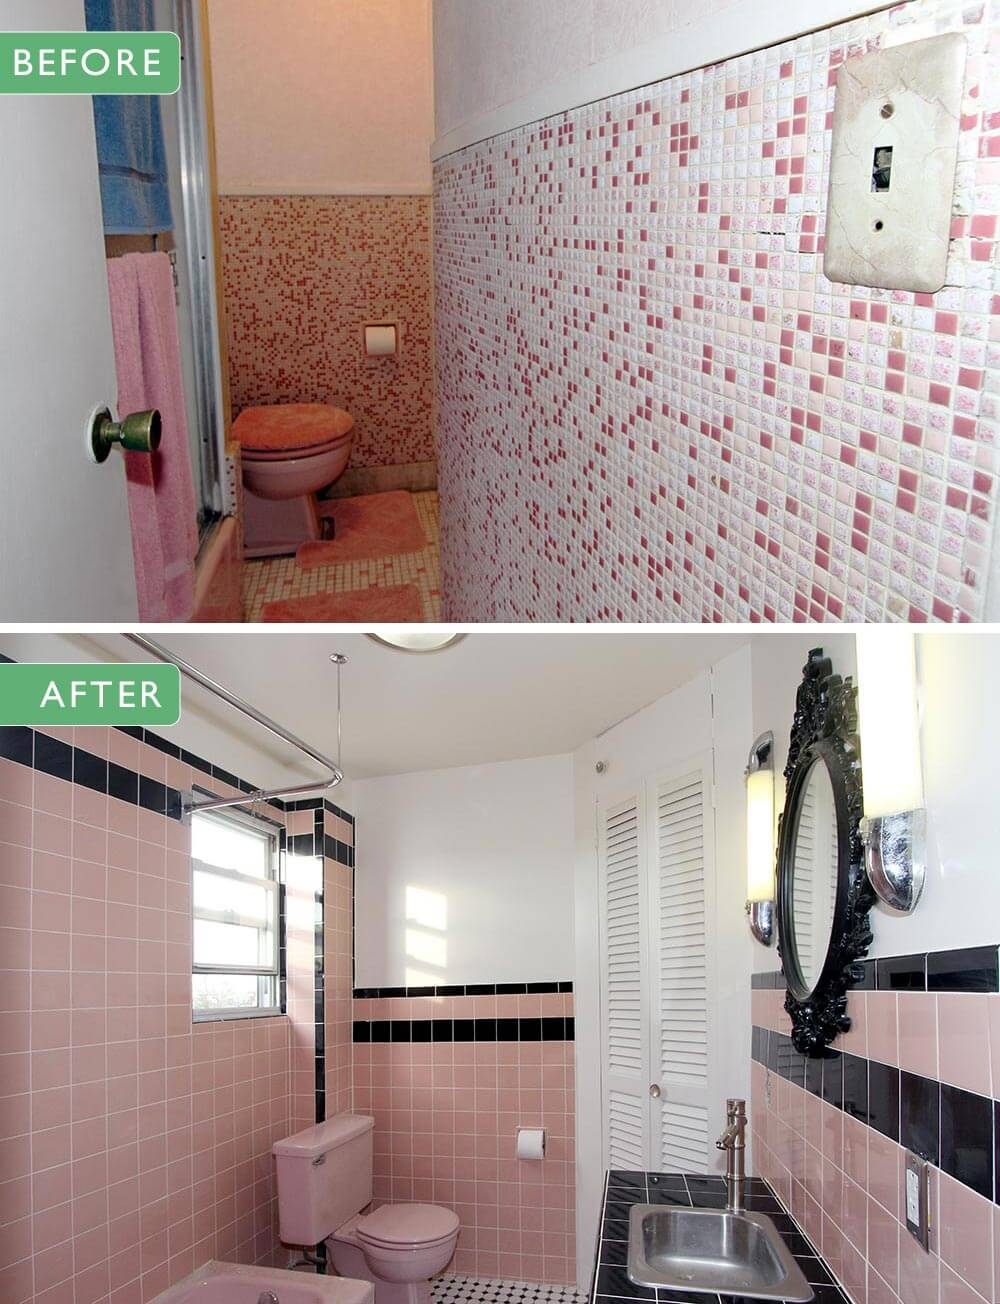 Local Bathroom Remodeling Impressive Where To Find Vintage Bathroom Tile Remember To Check Your Local . Inspiration